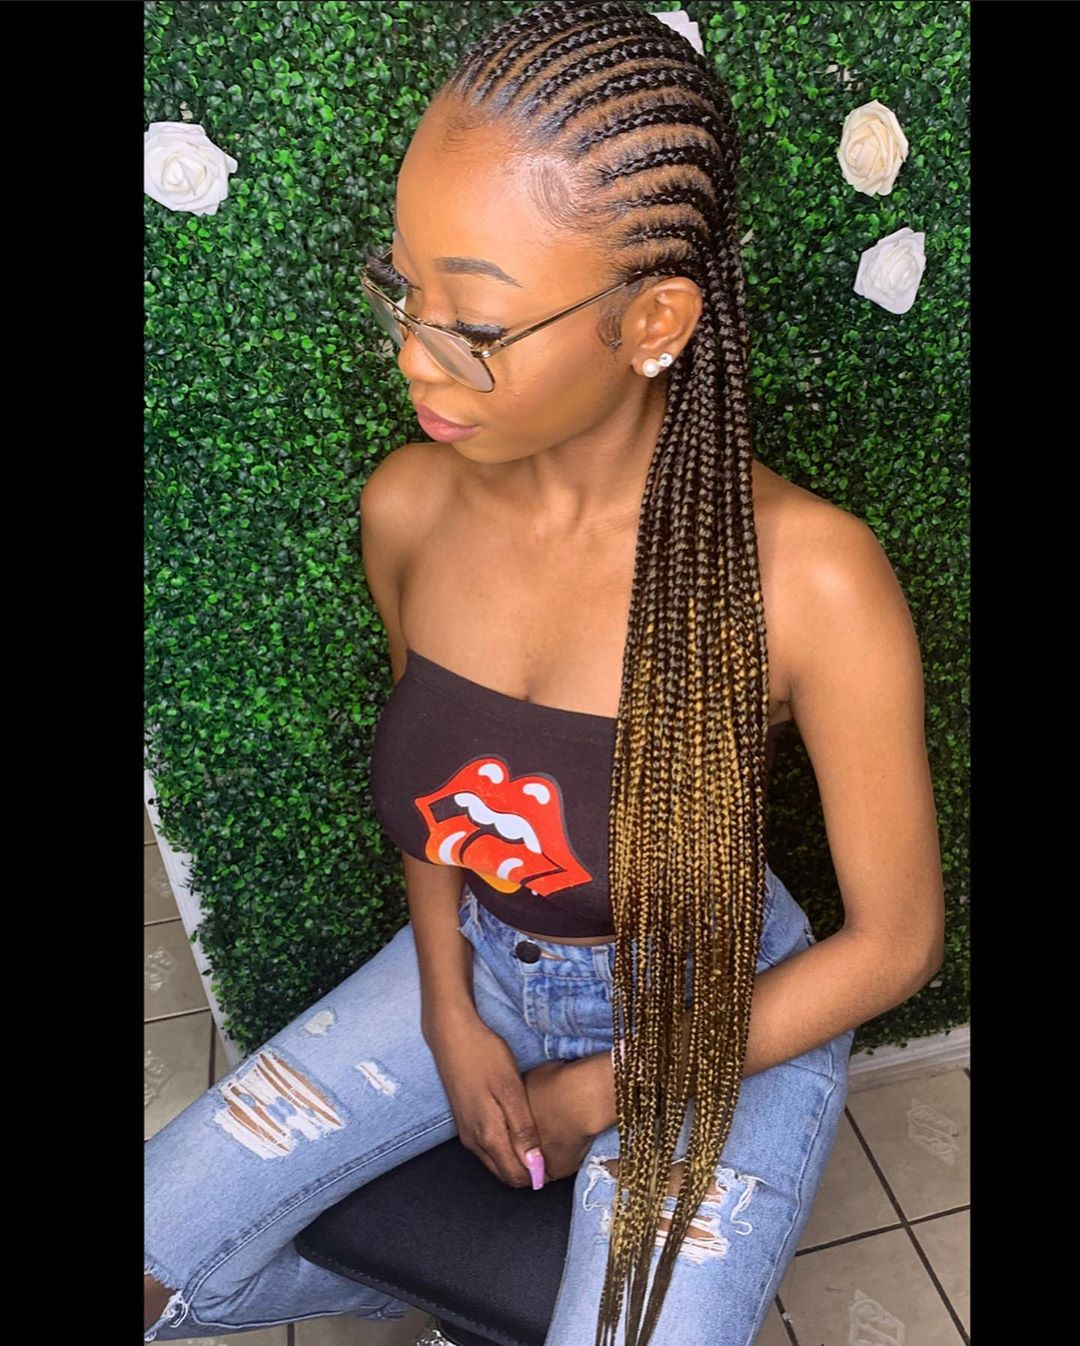 H B M E Llc S Instagram Post Medium Straight Backs Feed In Braids Ombre Swipe Left Feed In Braid Big Cornrows Hairstyles Braids Hairstyles Pictures